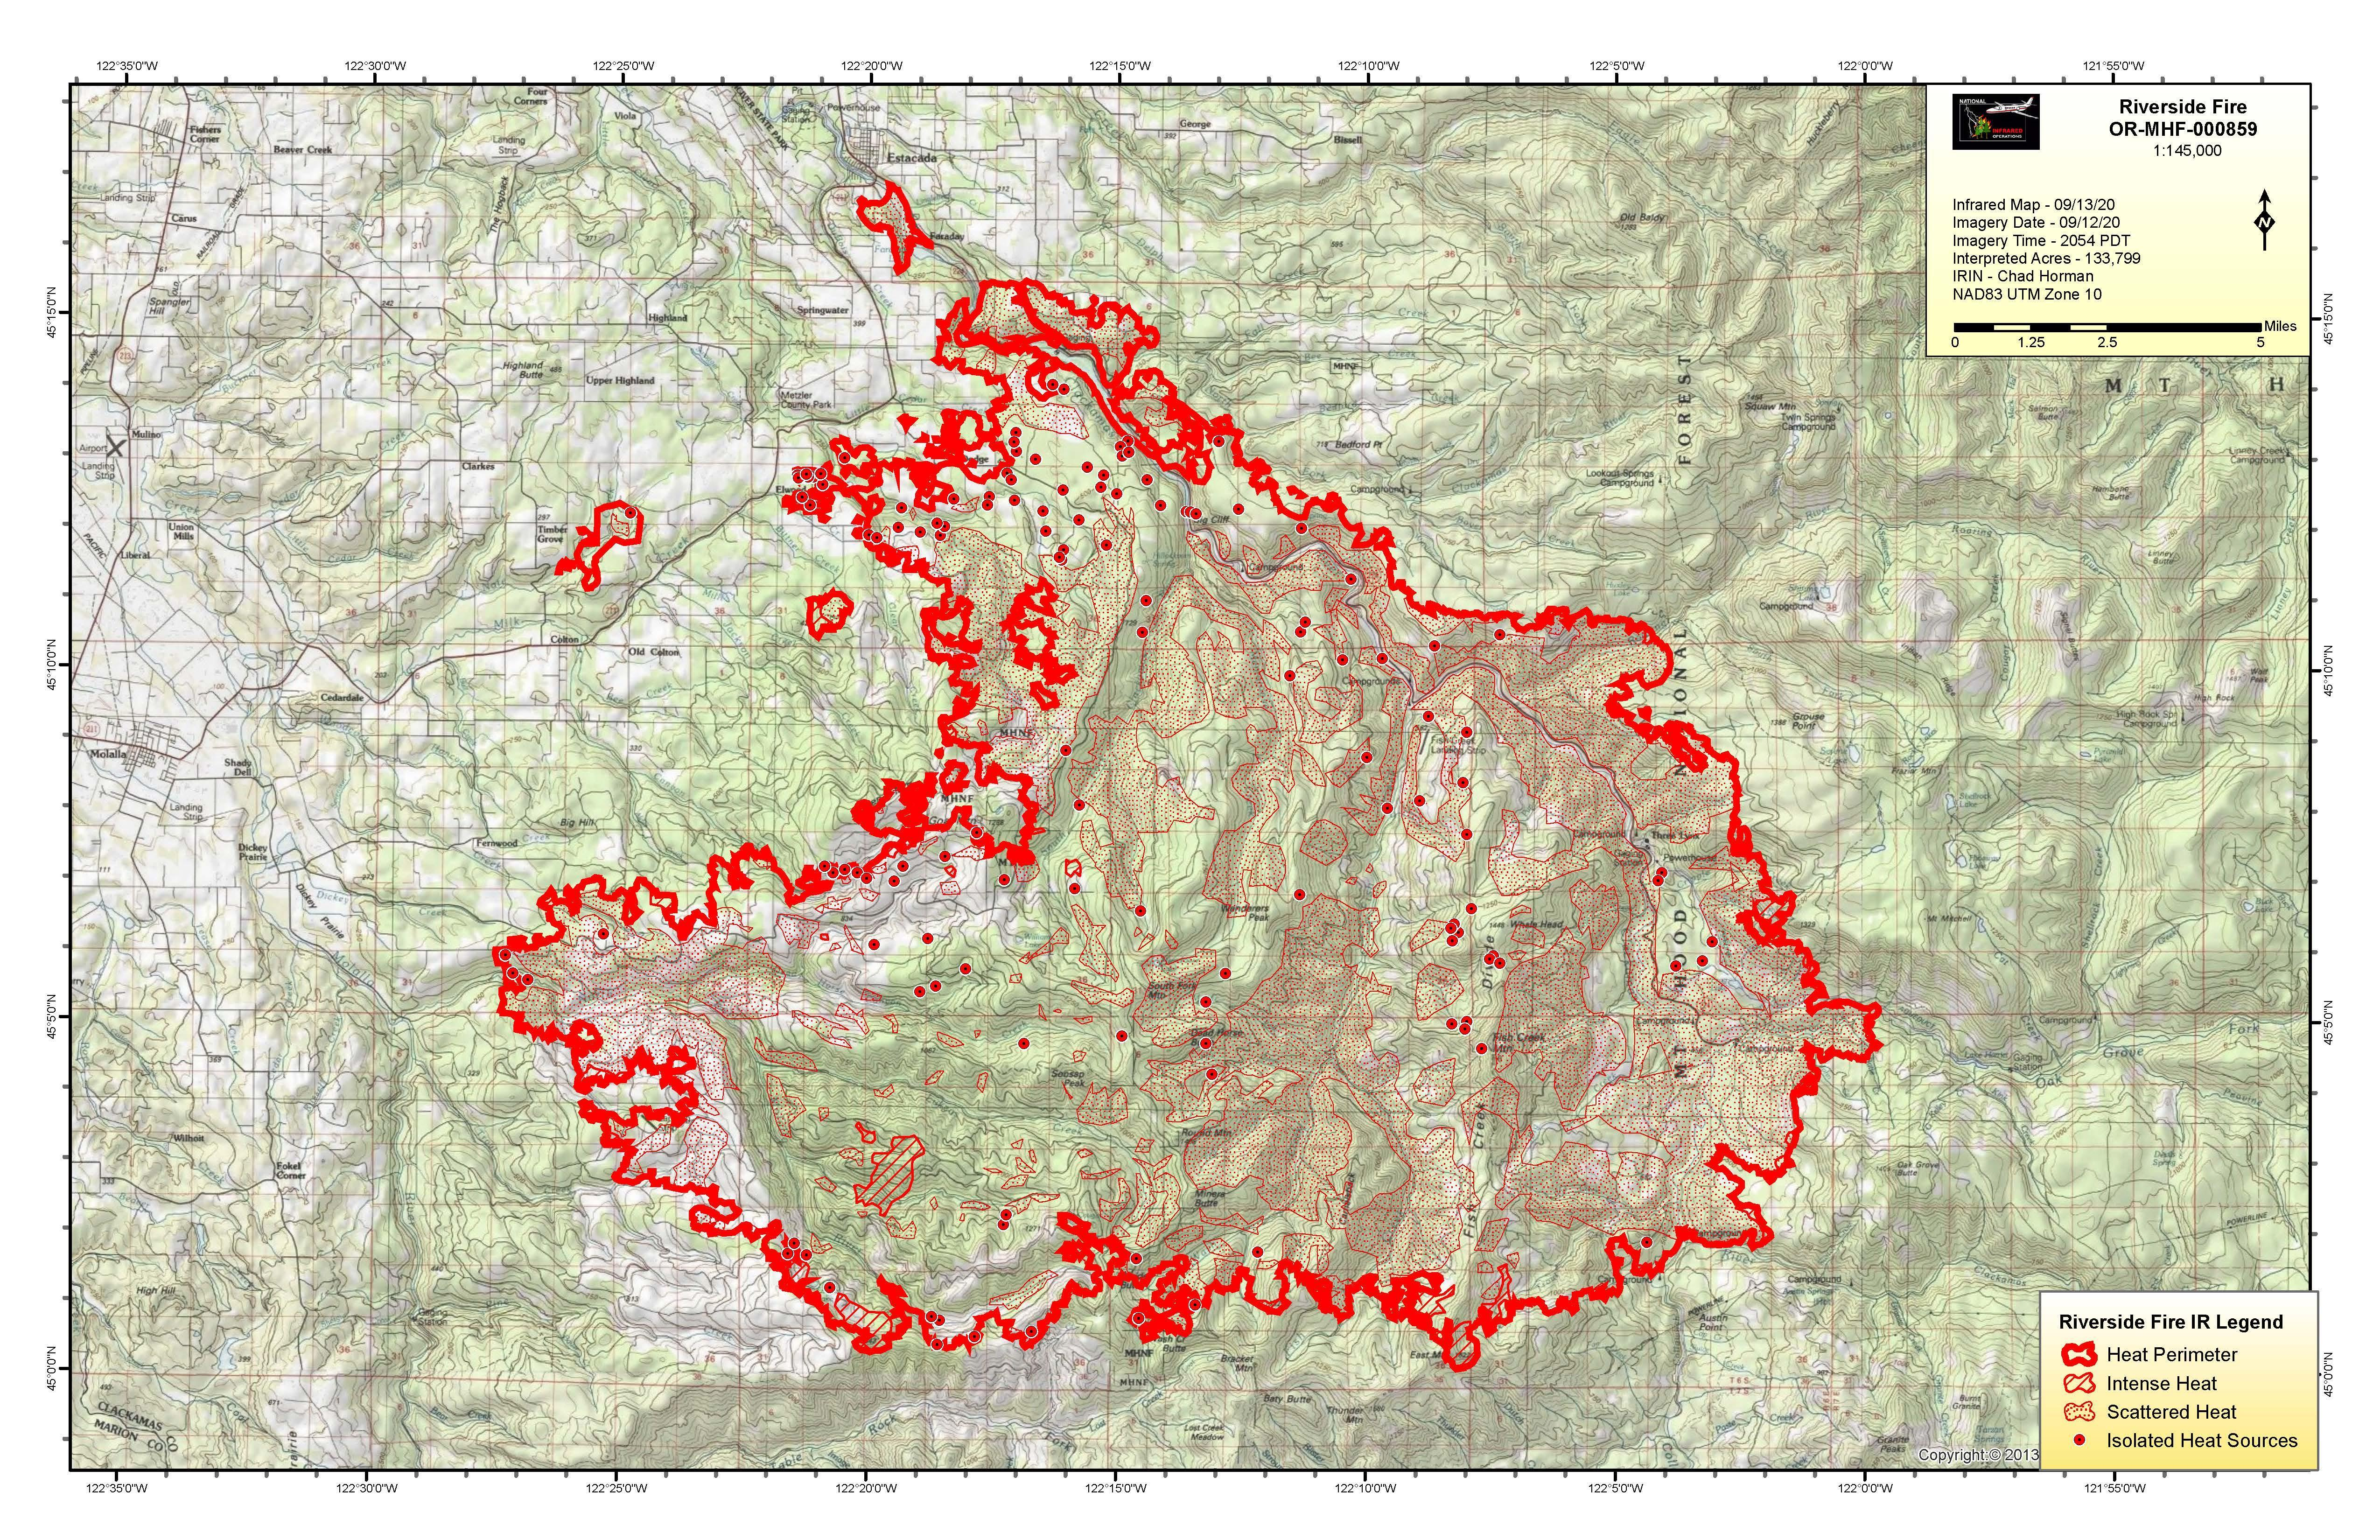 Infrared flight map showing fire at 130,526 acres on September 13, 2020.